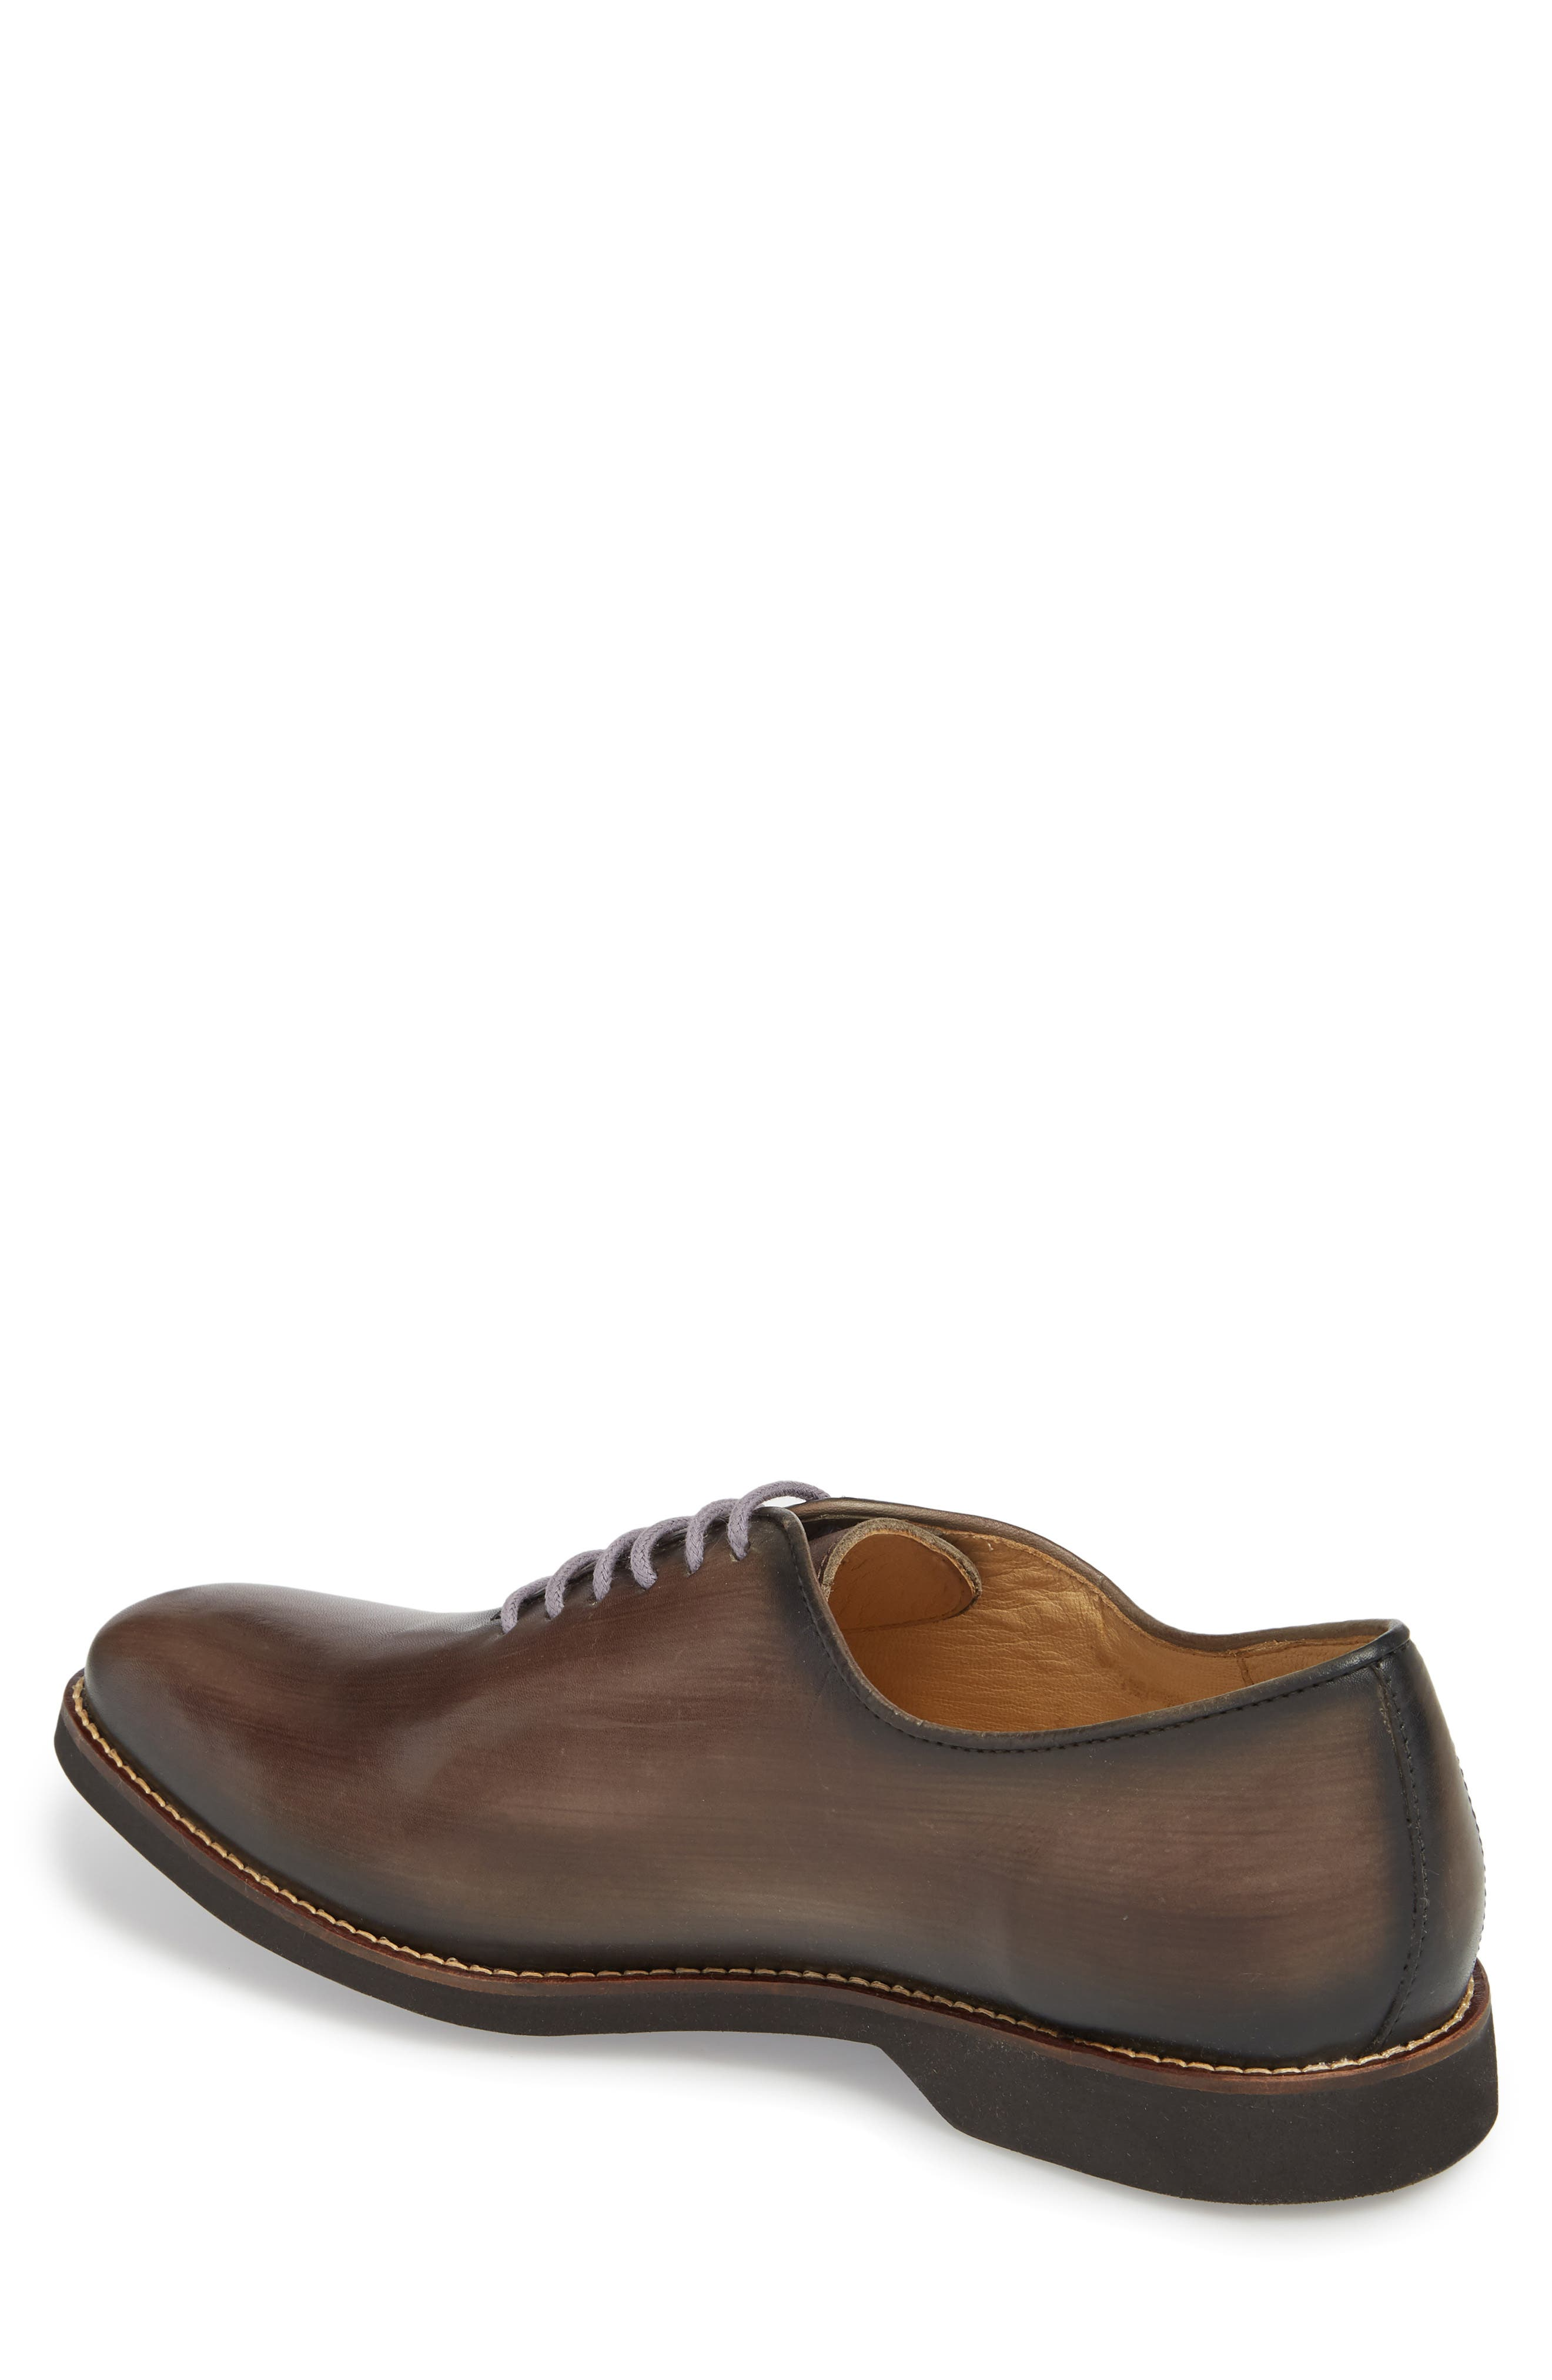 Sao Paulo II Whole Cut Shoe,                             Alternate thumbnail 2, color,                             TOUCH GREY BRUSHED LEATHER